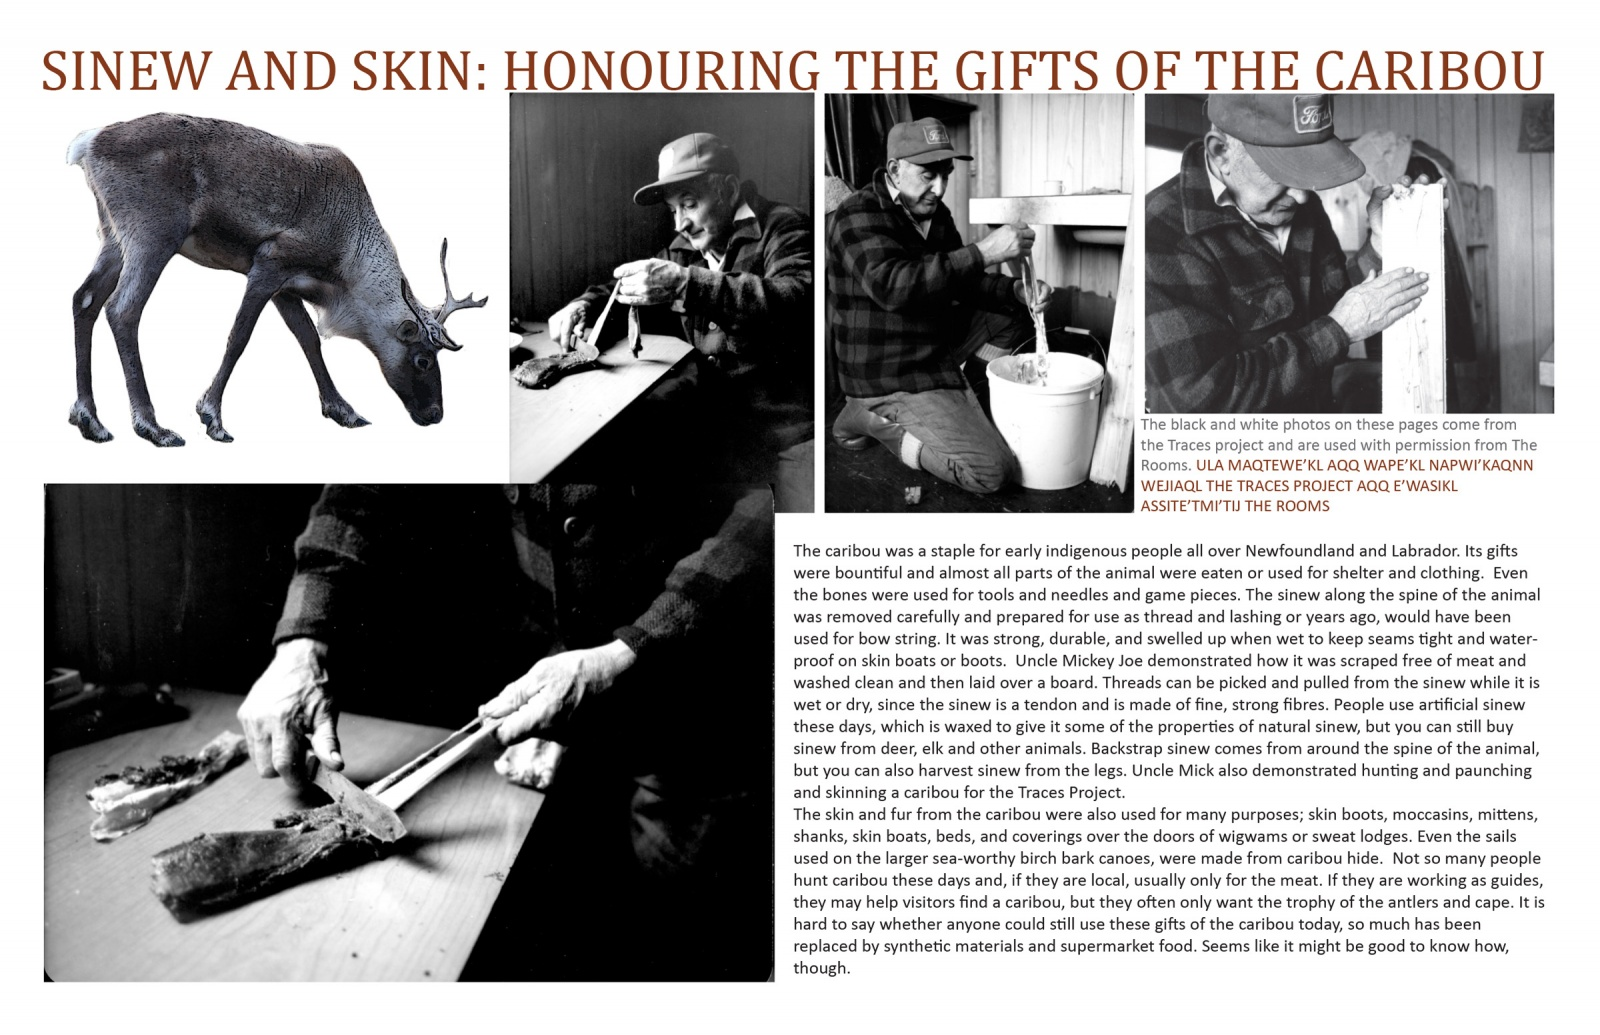 Sinew and Skin: Honouring the Gifts of the Caribou